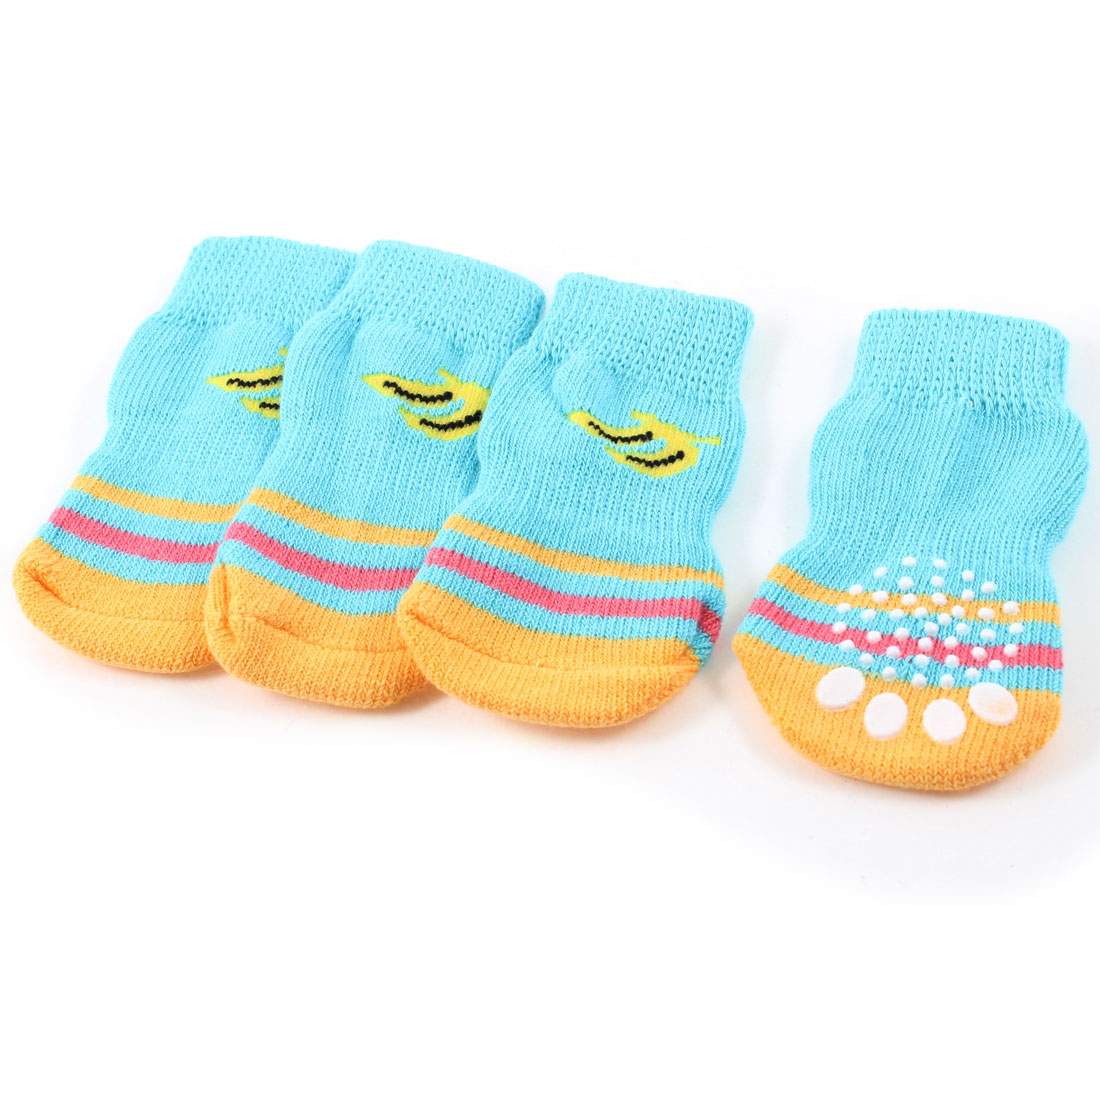 2 Pairs Blue Yellow Knitting Banana Paw Pattern Stretchy Pet Dog Puppy Socks